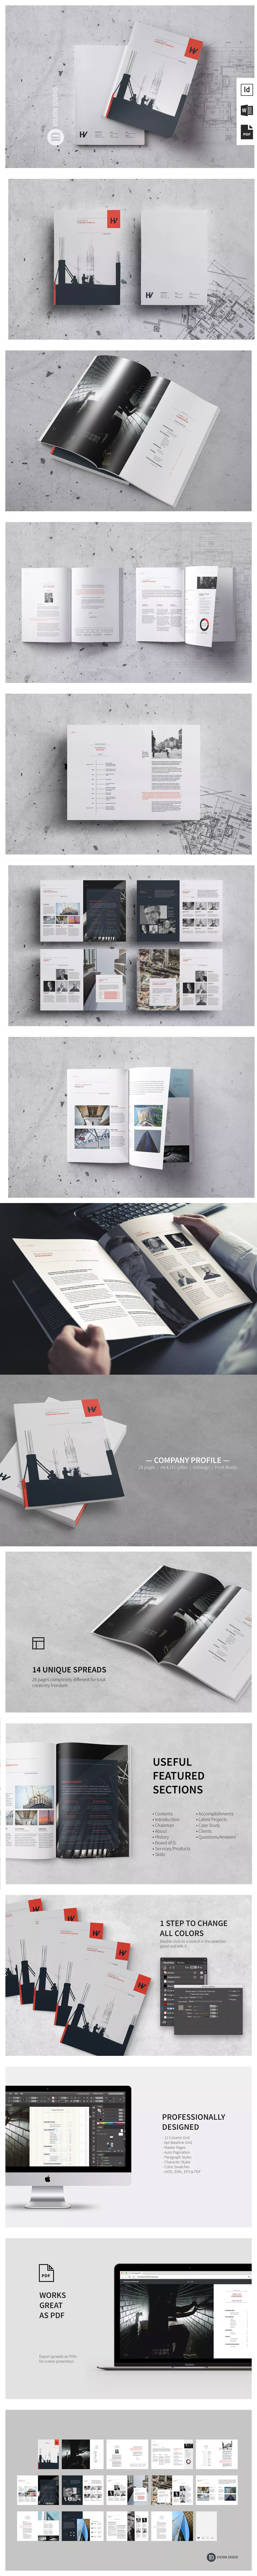 Company Profile Template Indesign Indd A4 And Us Letter Size Company Profile Company Profile Design Templates Company Profile Template